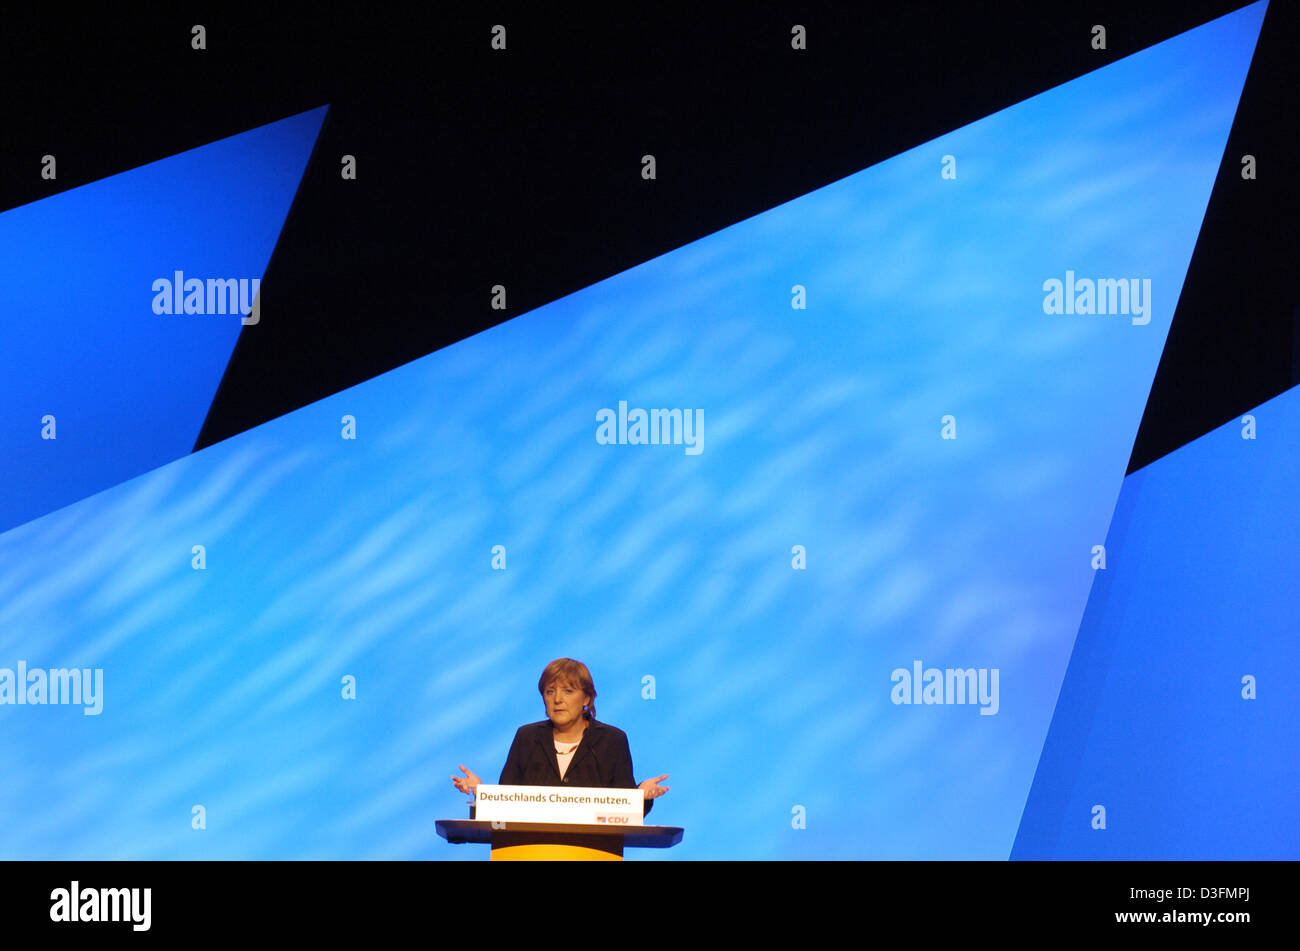 (dpa) - Angela Merkel, Leader of the German Christian Democratic Union (CDU), gives a speech in front of the stage decoration during the CDU's 18th party congress in Duesseldorf, Germany, 6 December 2004. The party congress takes place under the motto 'Deutschlands Chancen nutzen' (to use Germany's chances). Stock Photo